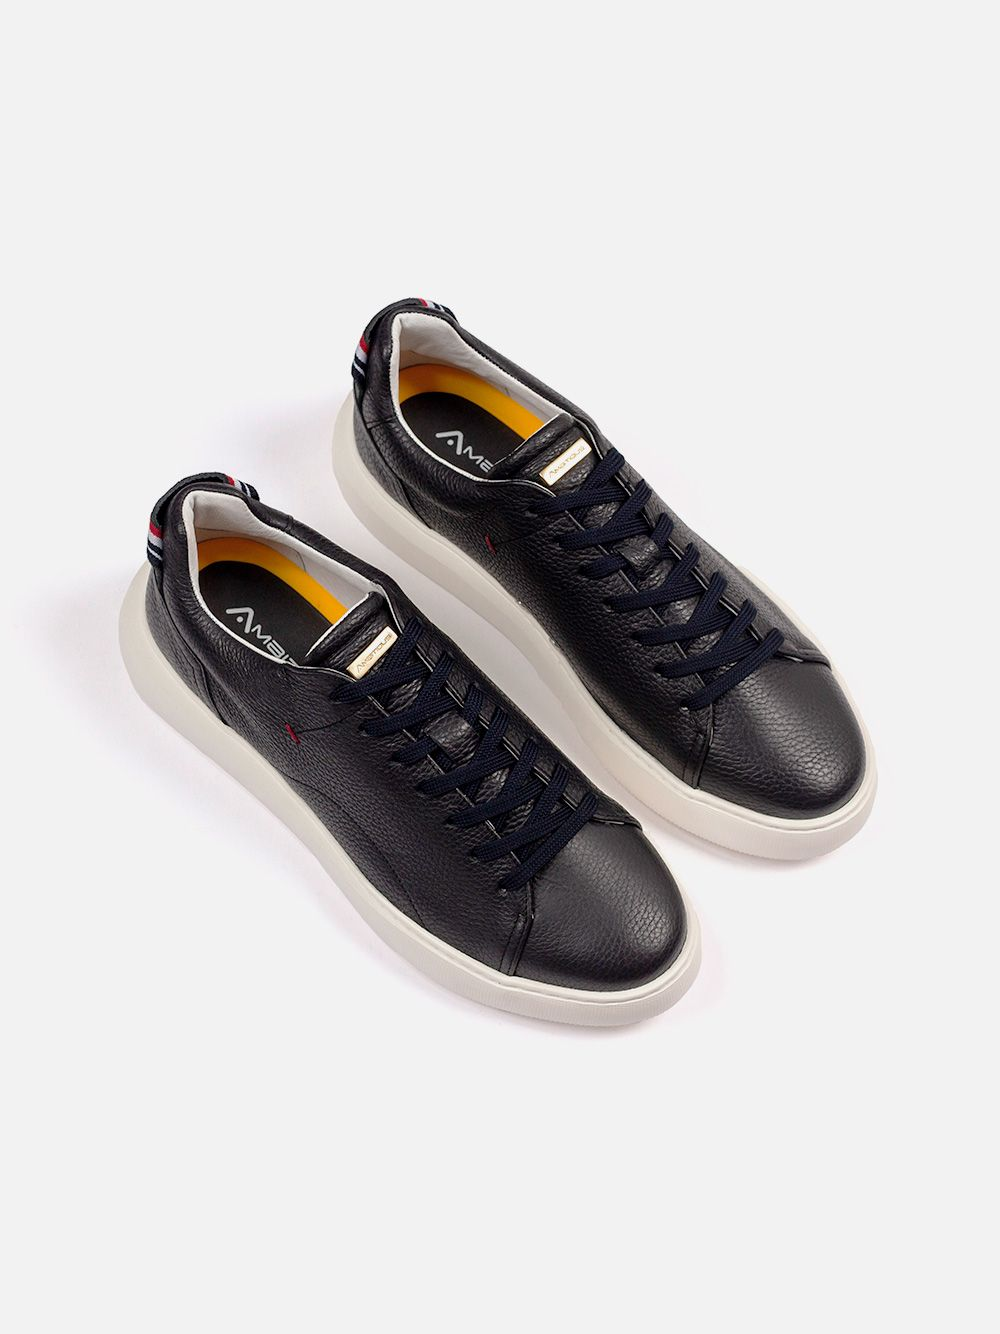 Black Leather Sneakers | AMBITIOUS